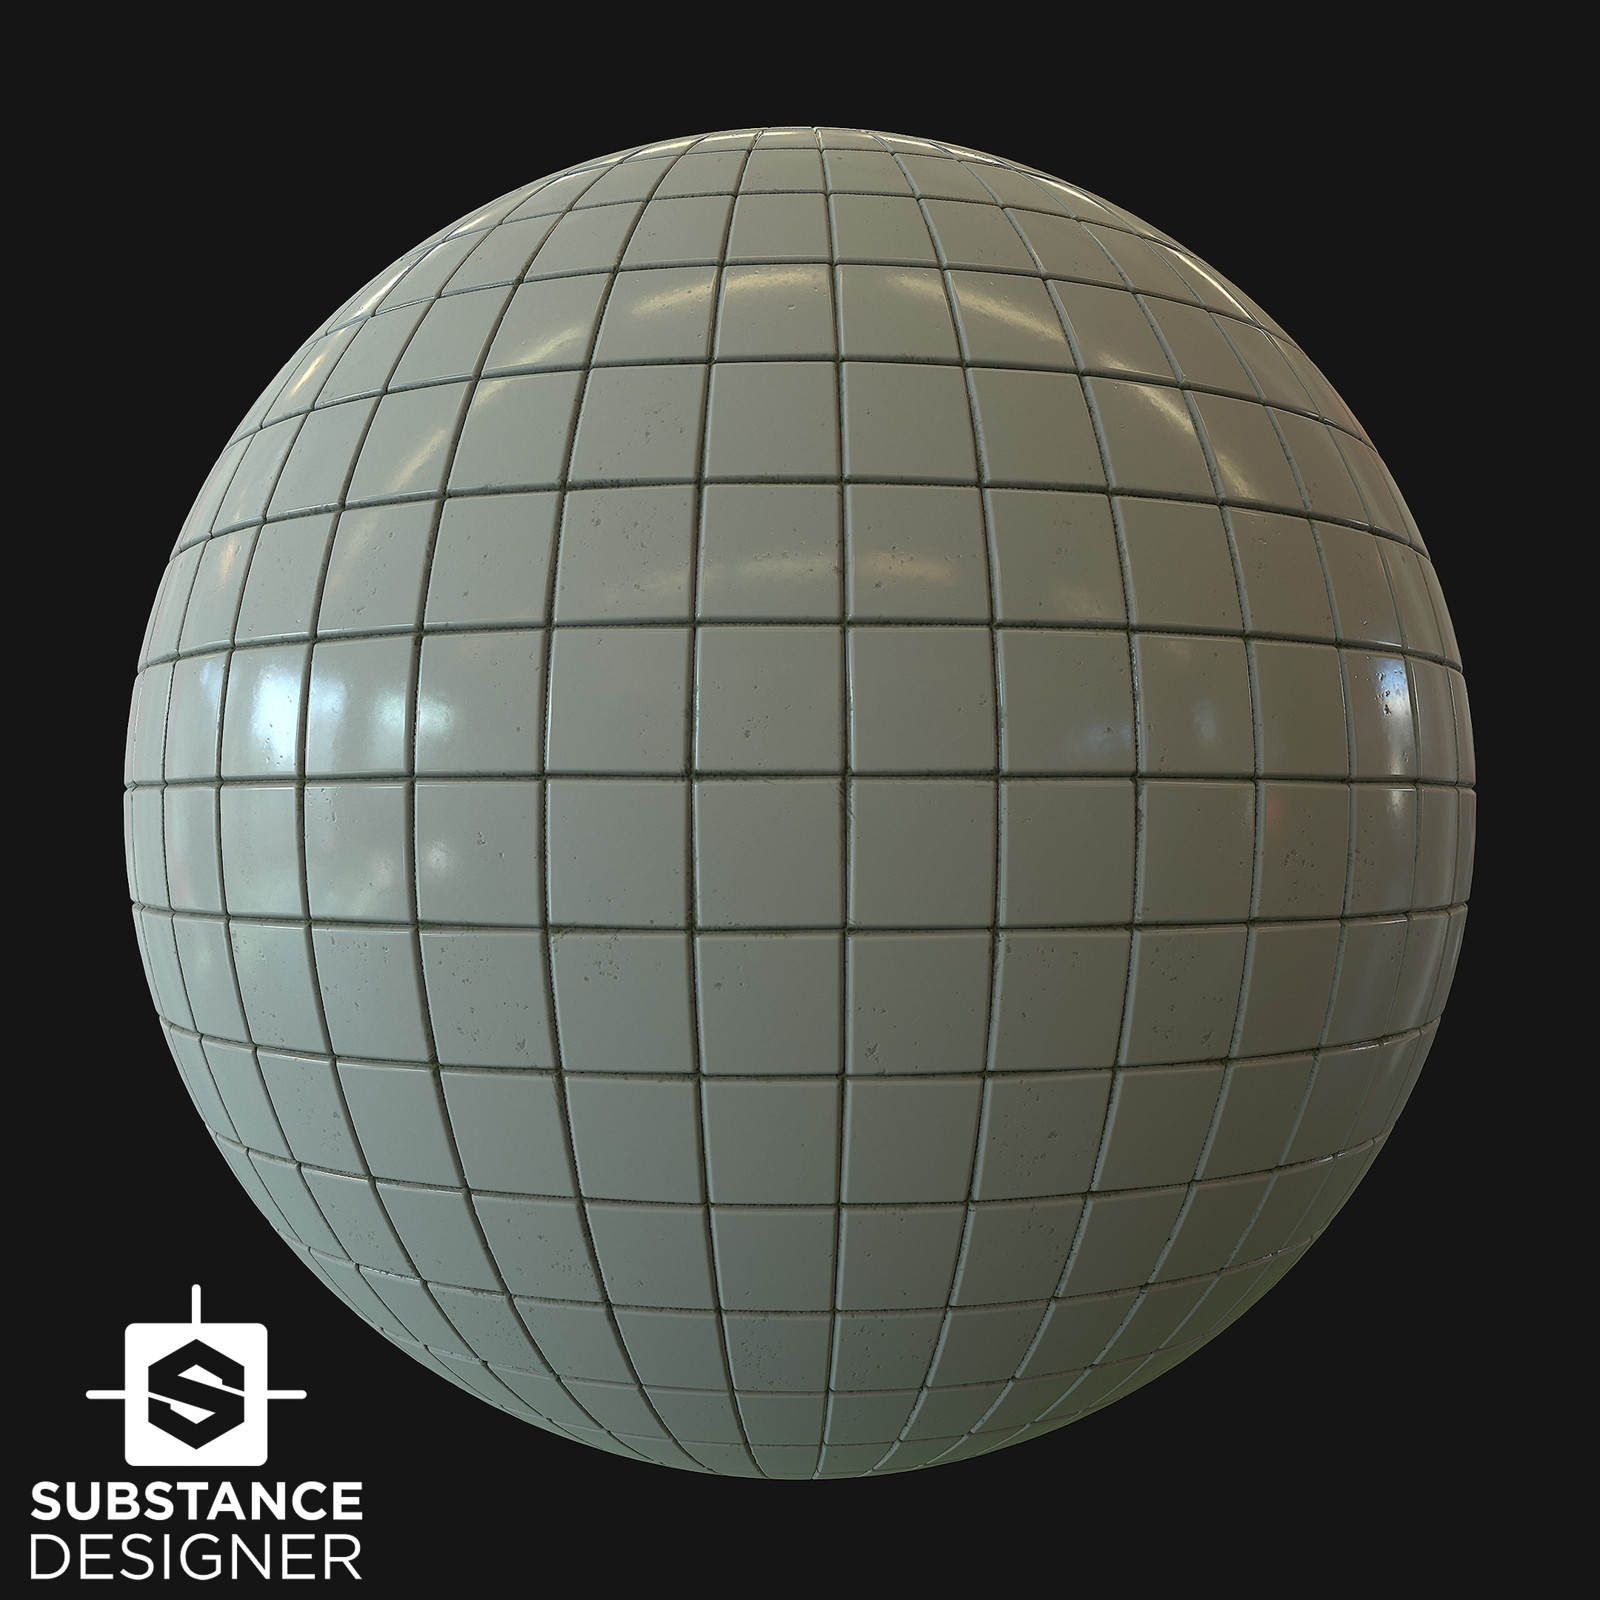 Ceramic - Wall Tiles - Substance Designer Material